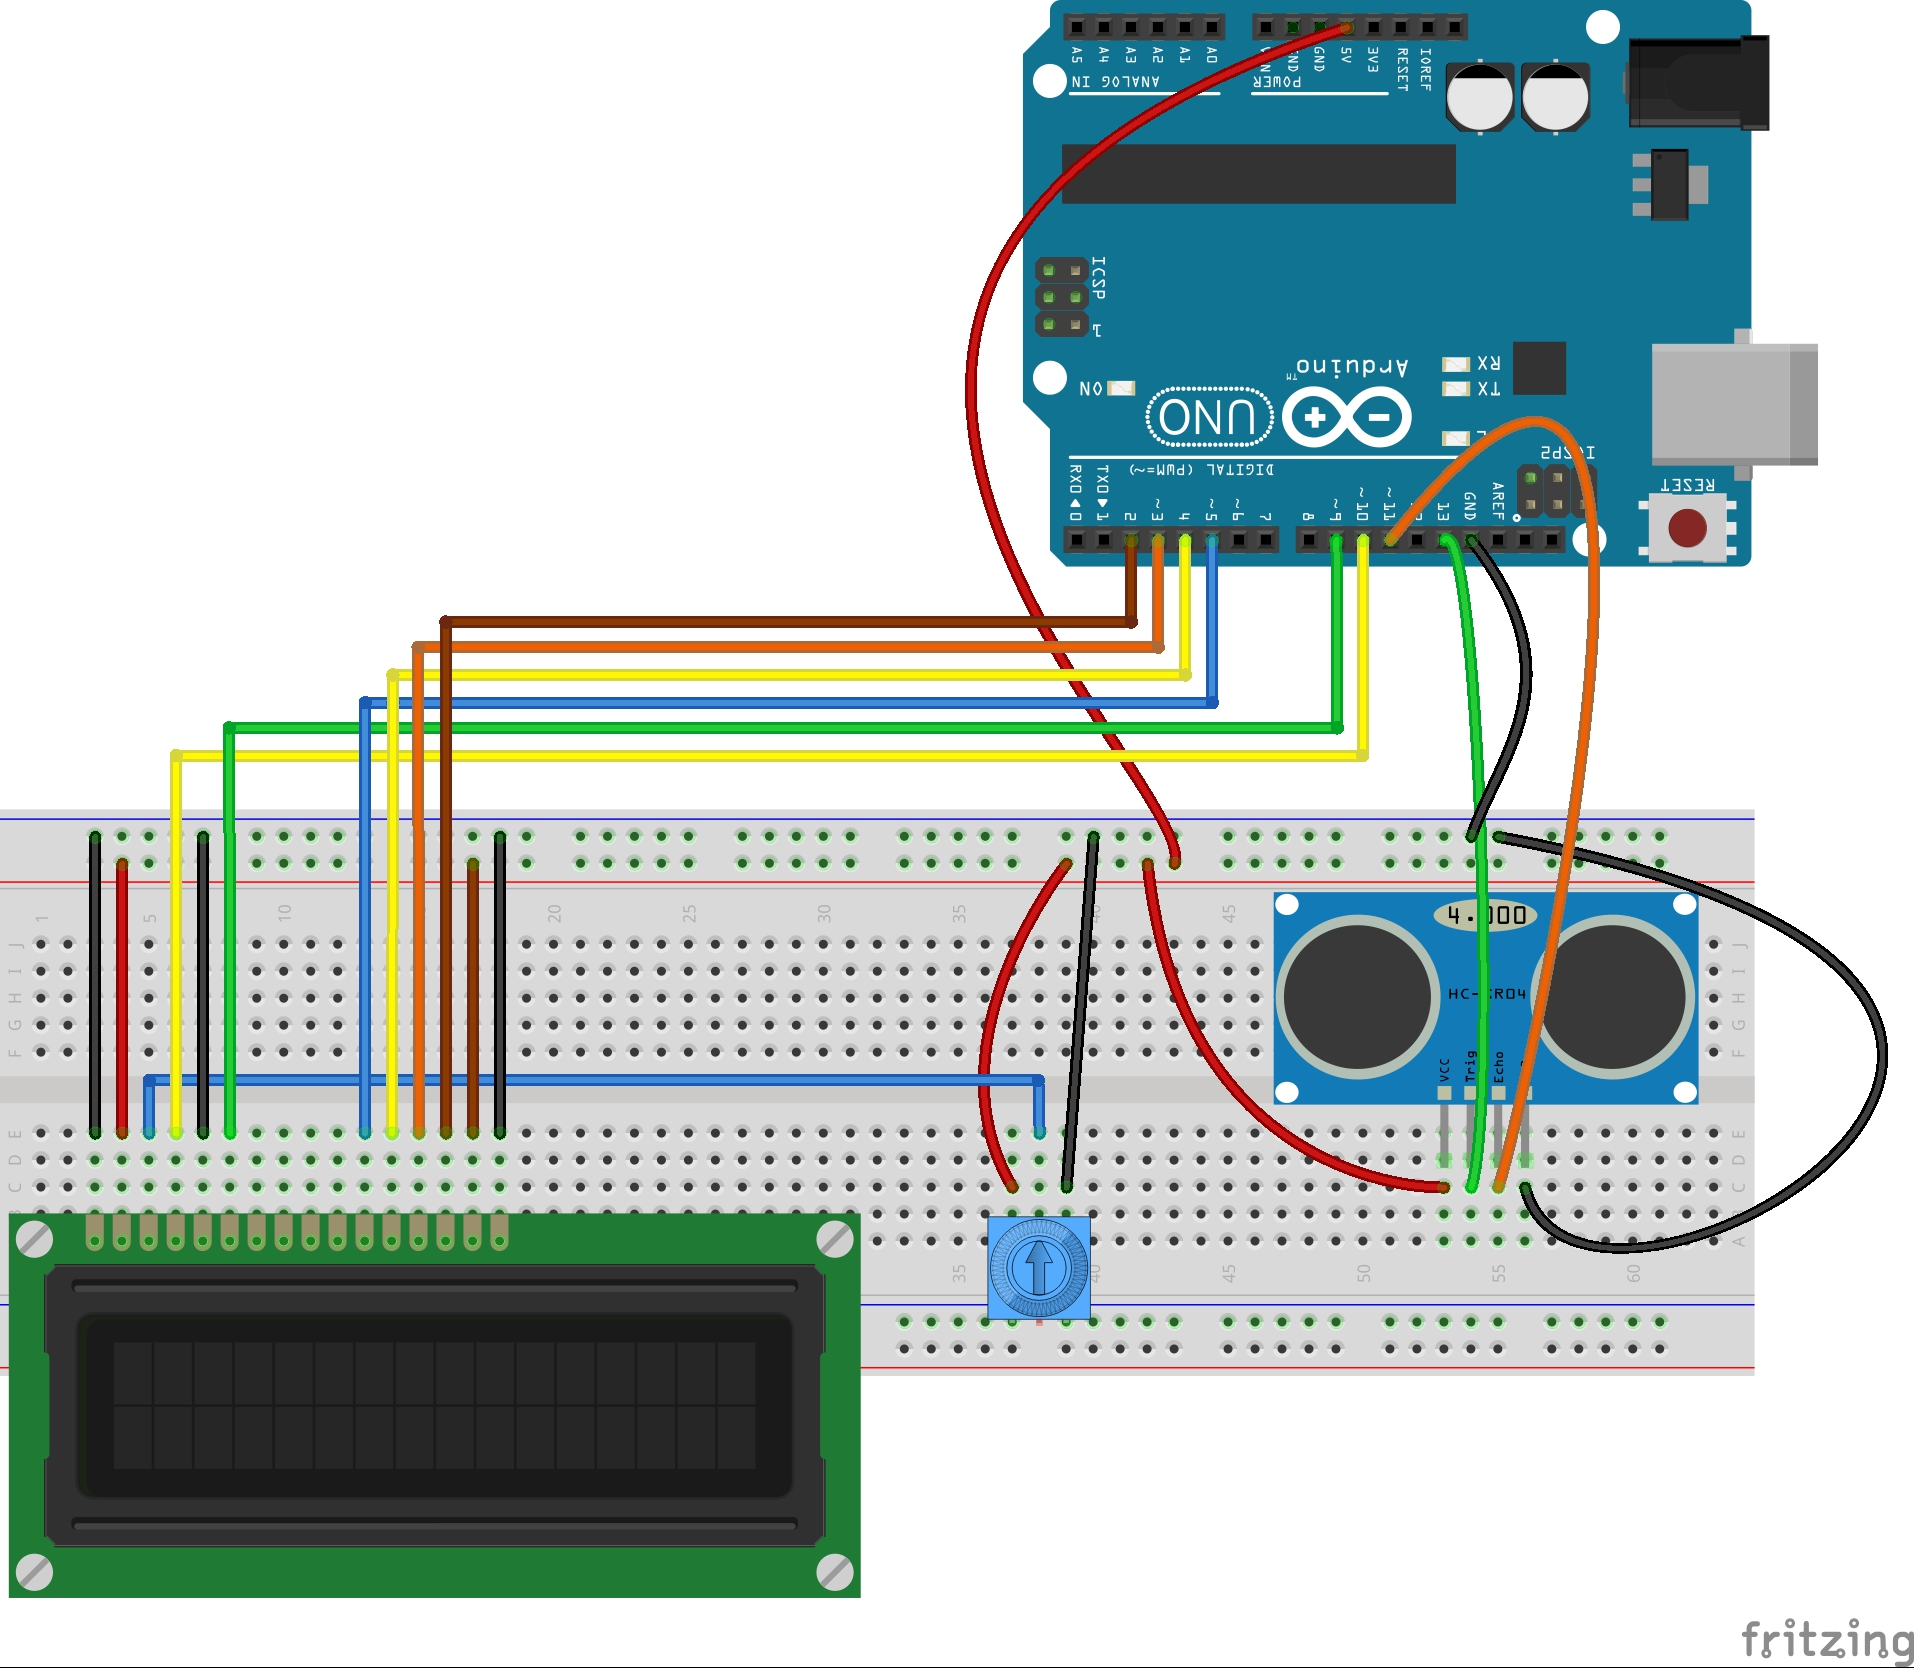 Lesson 20 Arduino Lcd Project For Measuring Distance With Microcontroller Based Schematics Circuits Projects And Tutorial